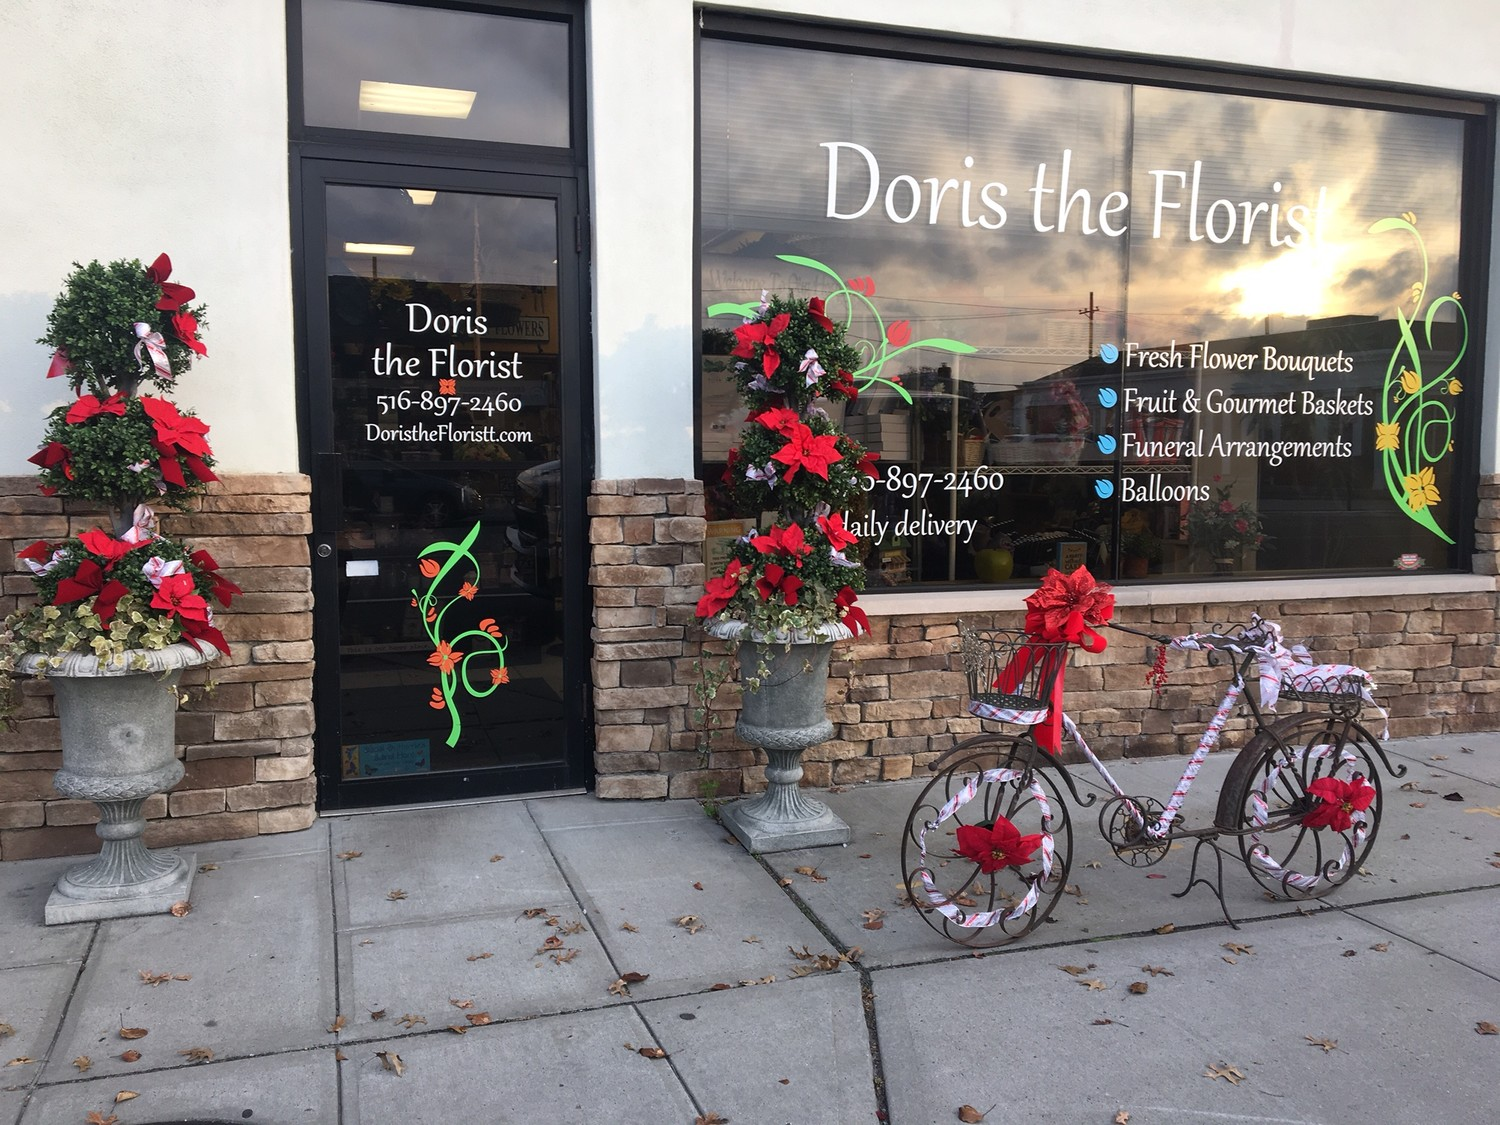 Decorative holiday floral arrangements at Doris the Florist.